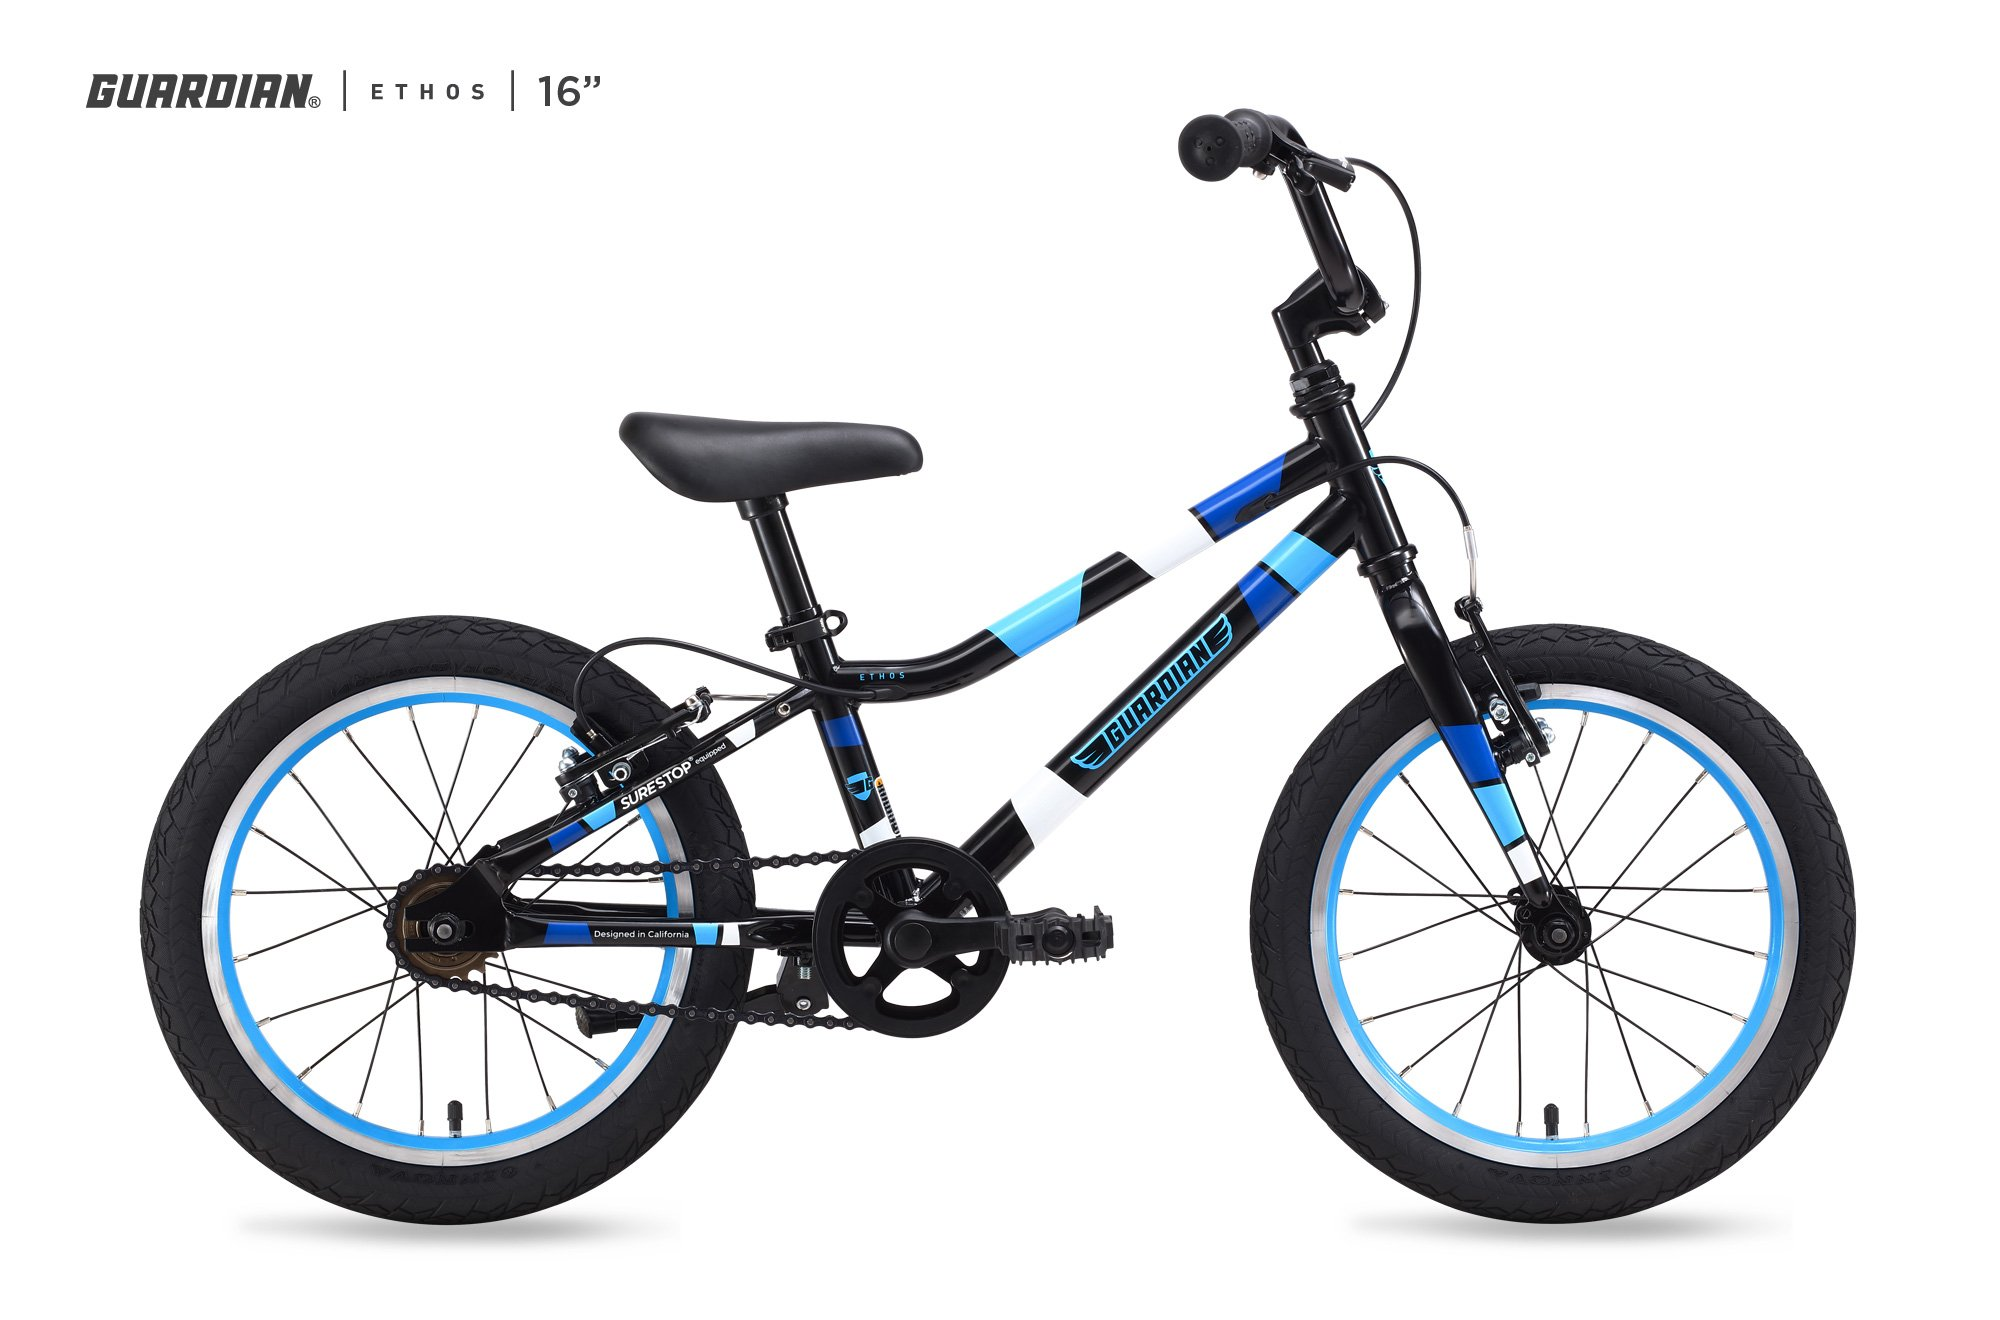 Guardian Bikes Company Ethos Safer Patented SureStop Brake System 16'' Kids Bike, Black/Blue